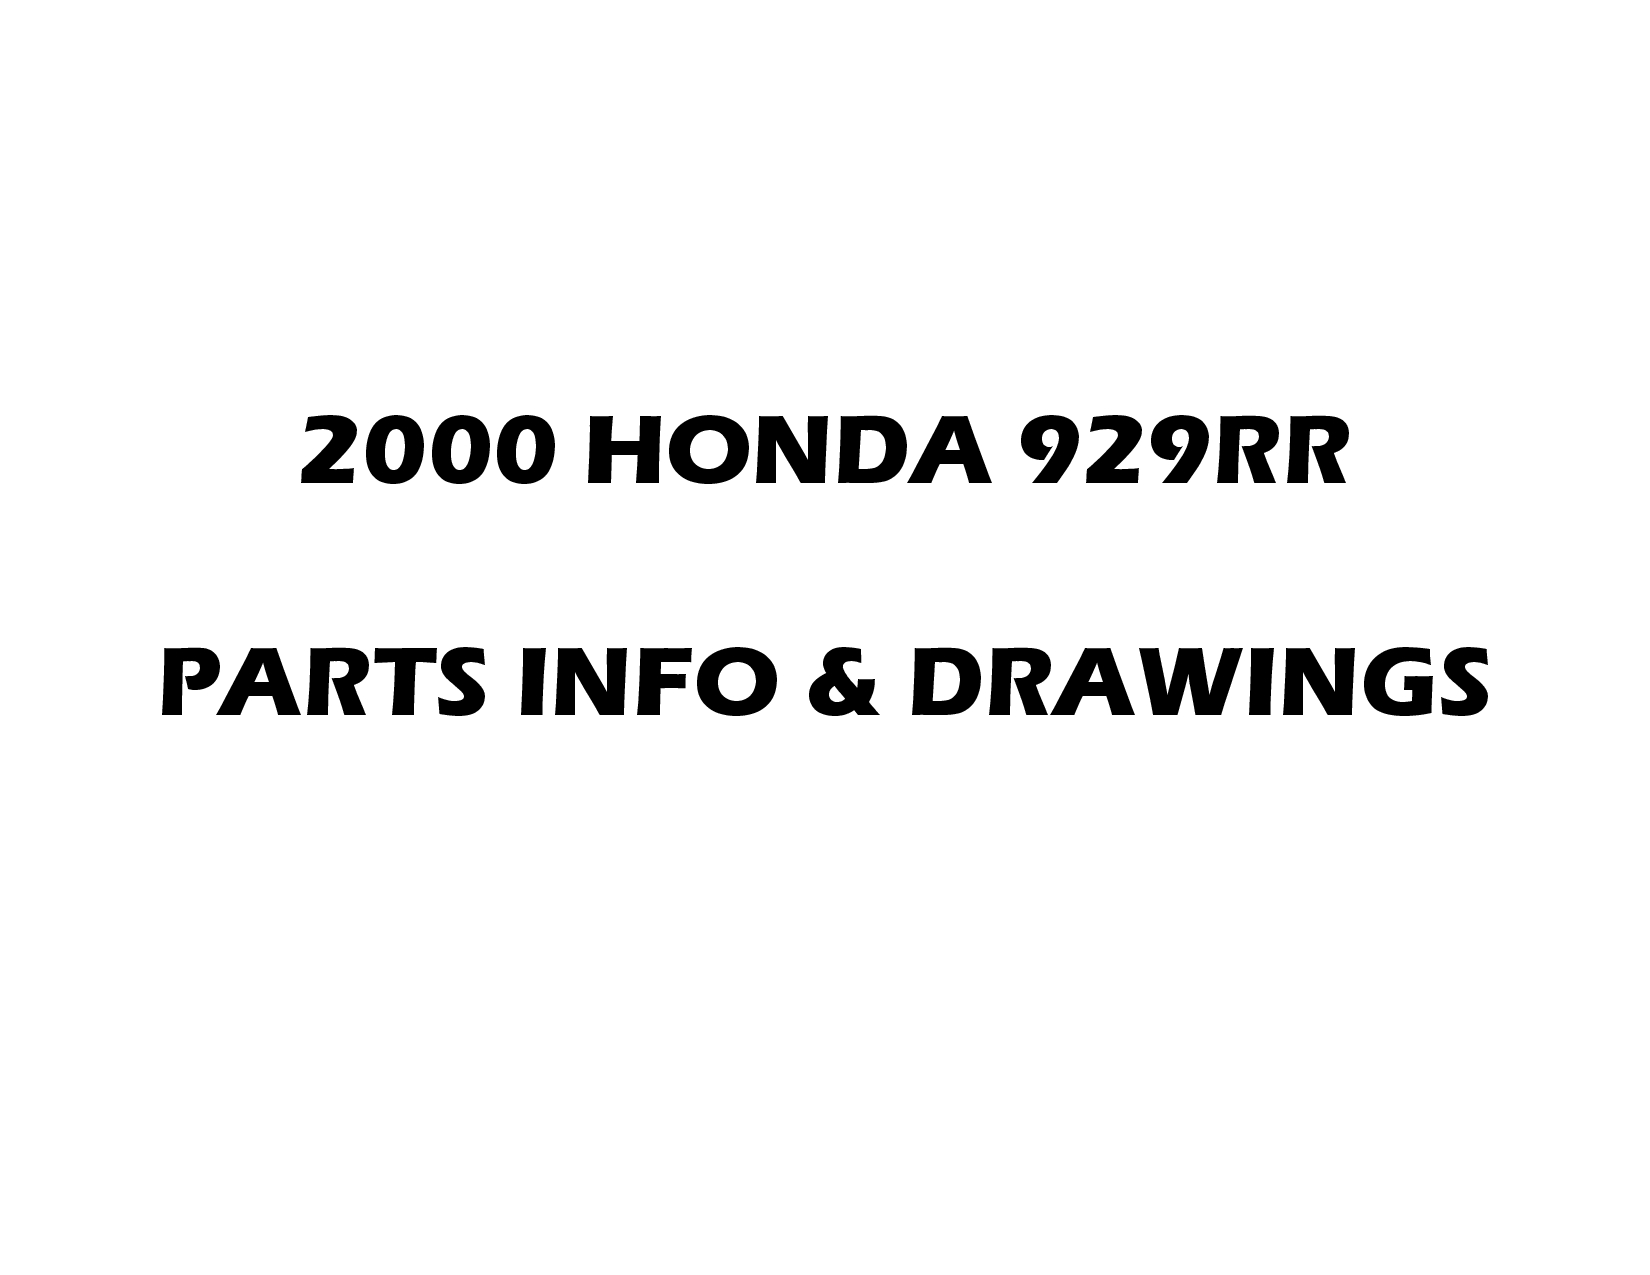 Honda CBR 929 Fireblade 2000 Parts List PDF Download